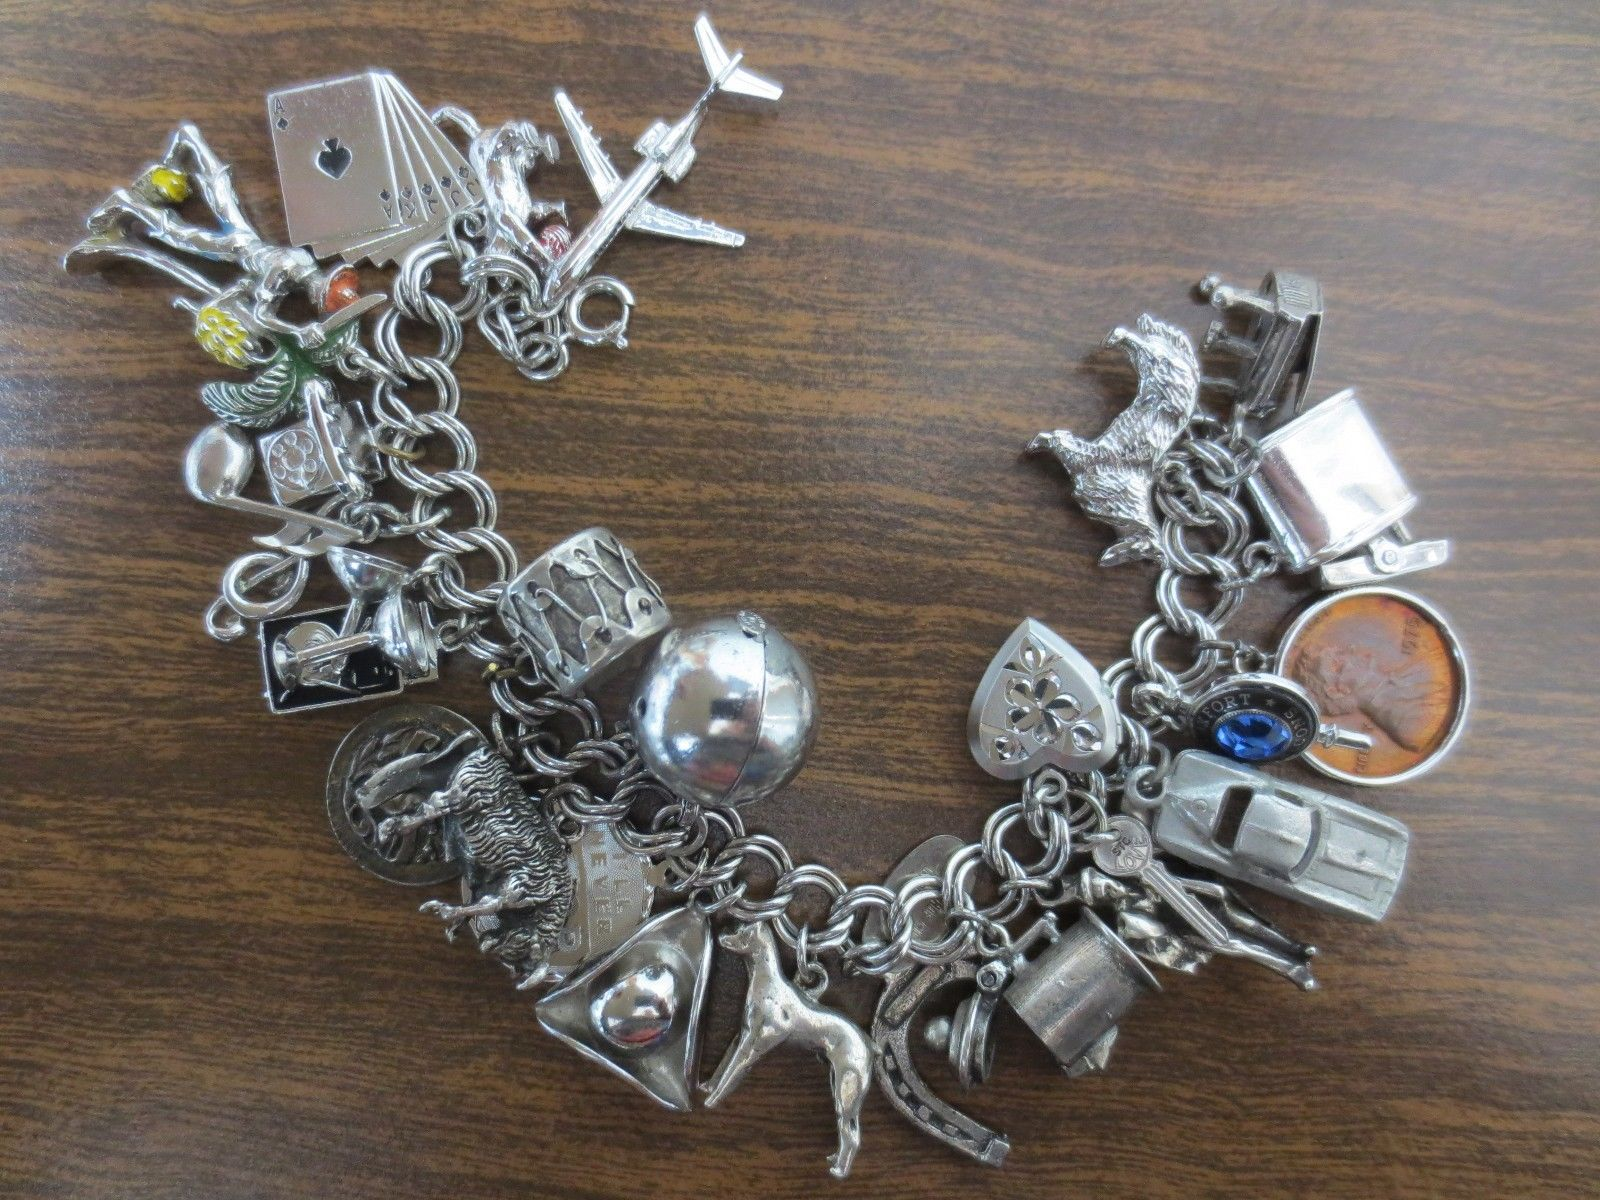 Loaded Vintage Sterling Silver Charm Bracelet w 26 Old Charms Heavy 105 3 Grams